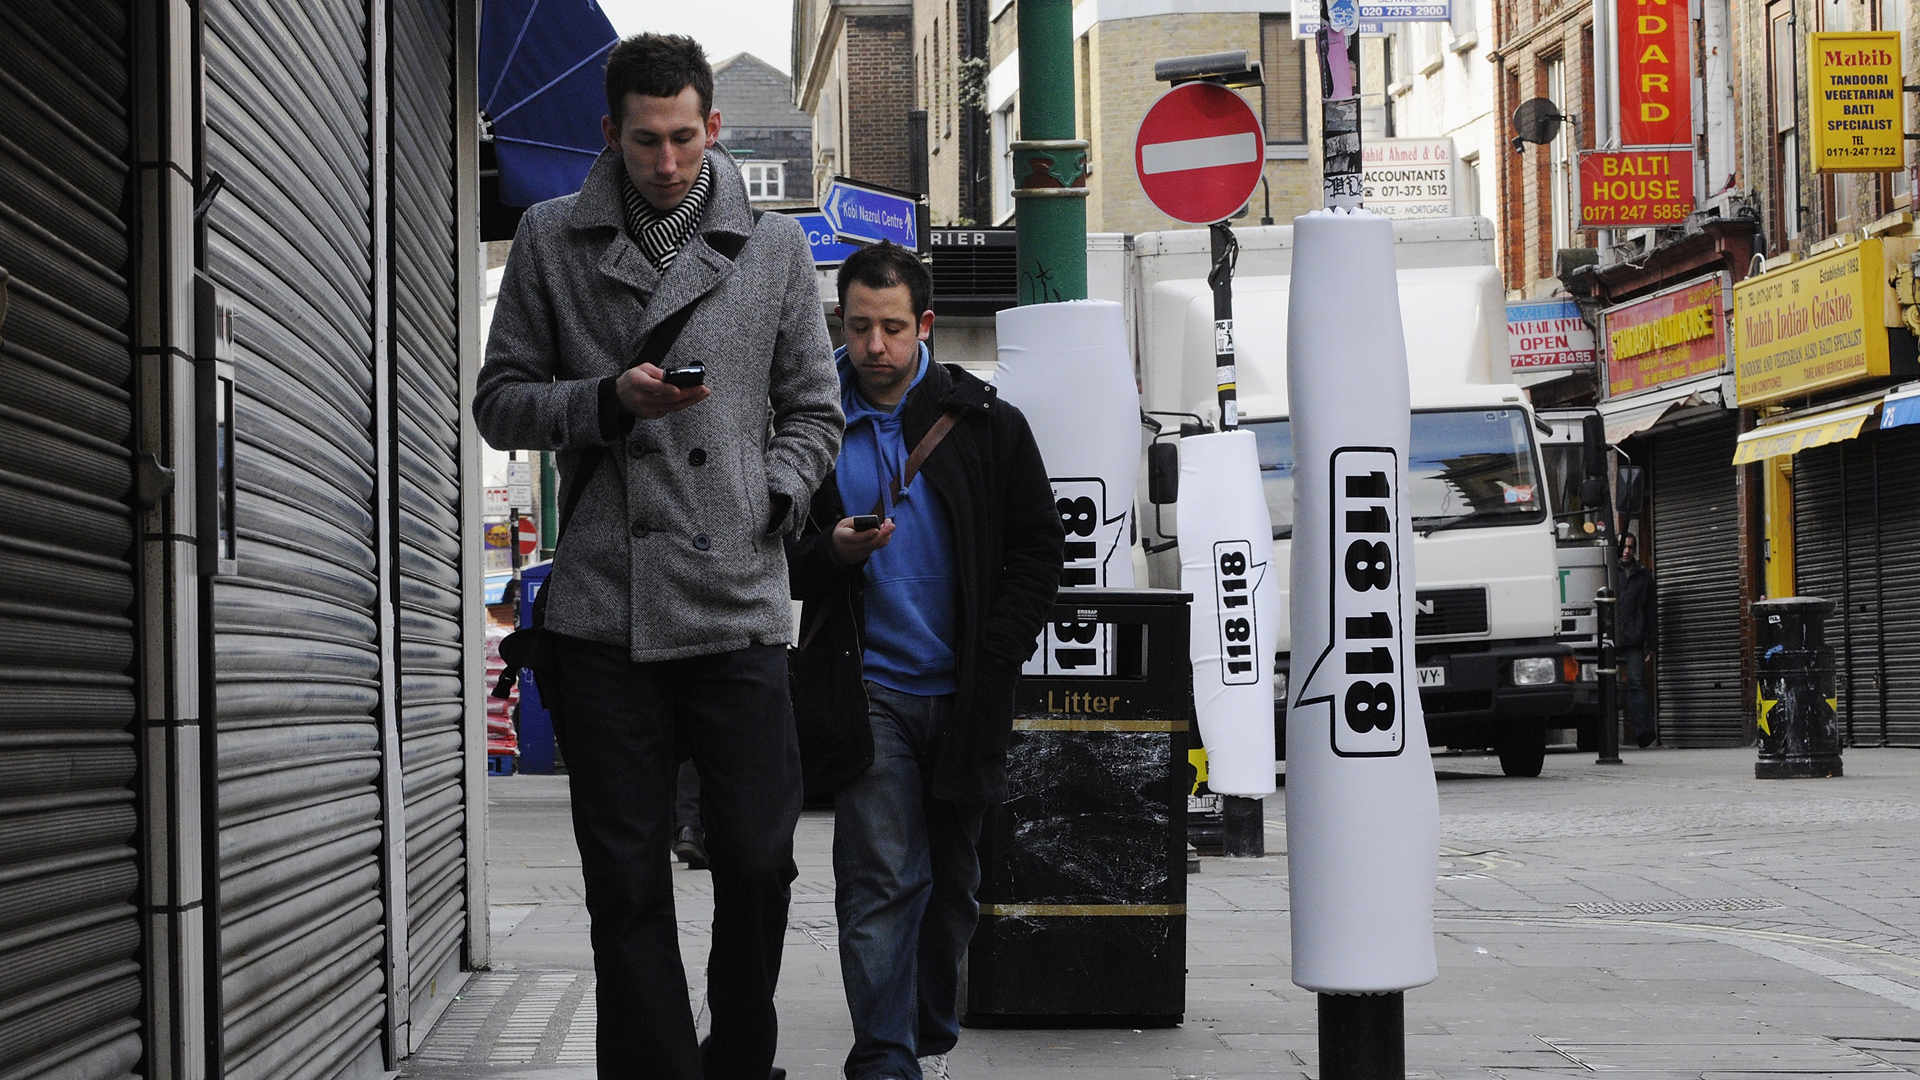 Two pedestrians walks past padded lamp posts whilst texting in Brick Lane on March 4, 2008, in London, England. (Credit: Micha Theiner/Getty Images)